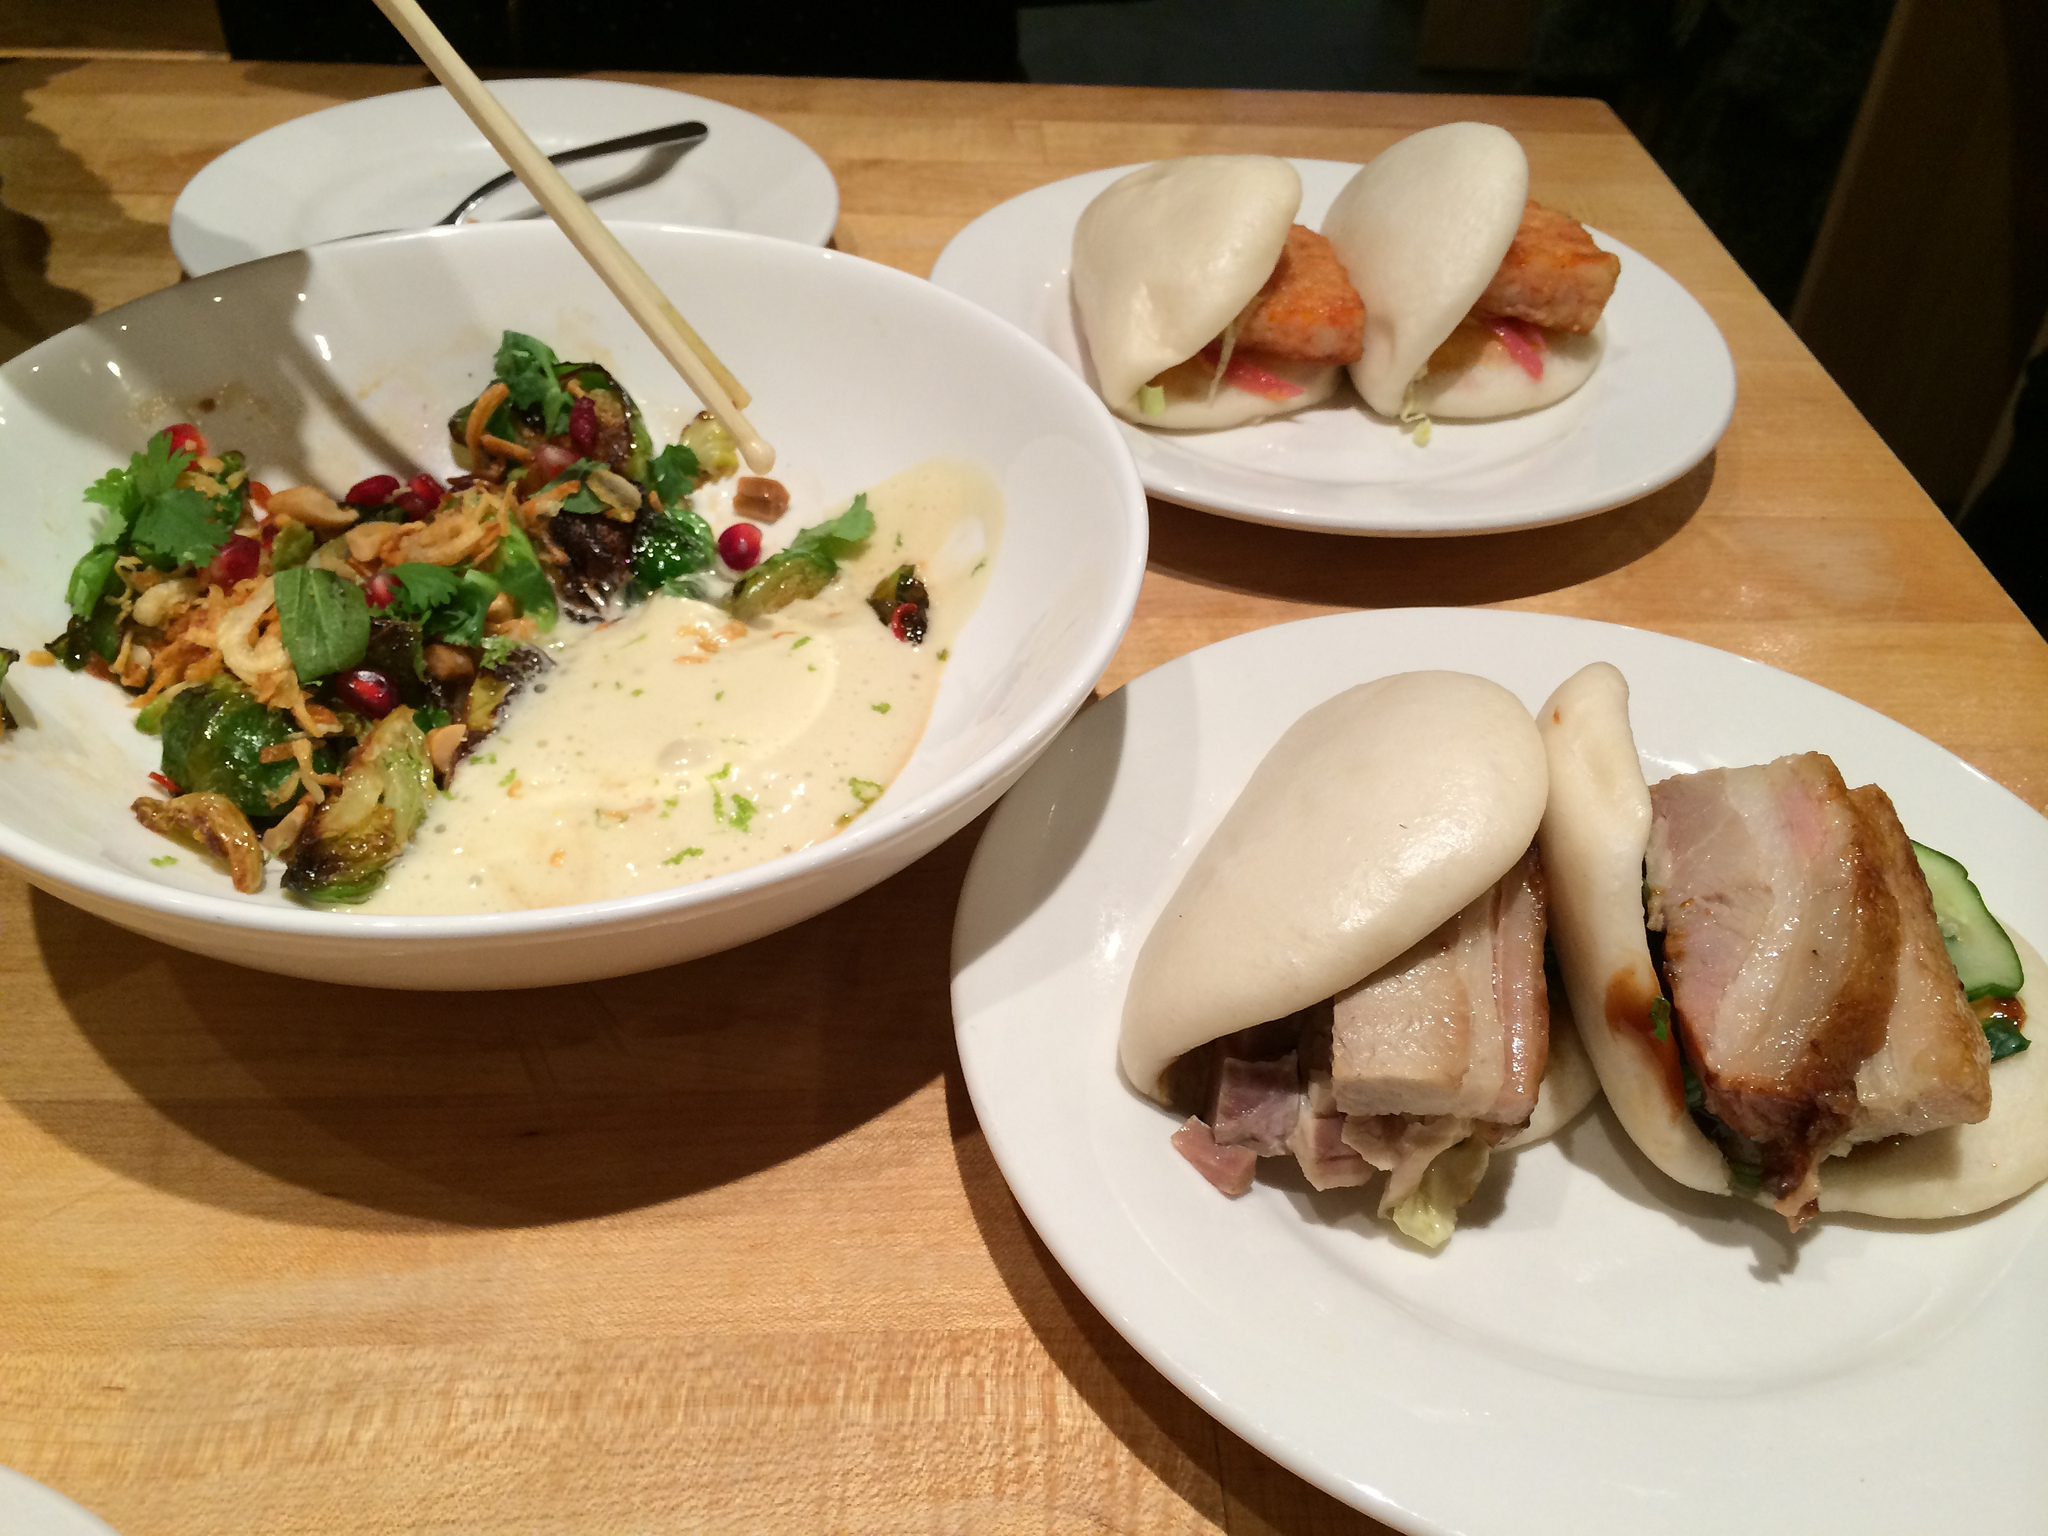 Buns and brussel sprouts at Momofuku Noodle Bar in New York. Photo by alphacityguides.